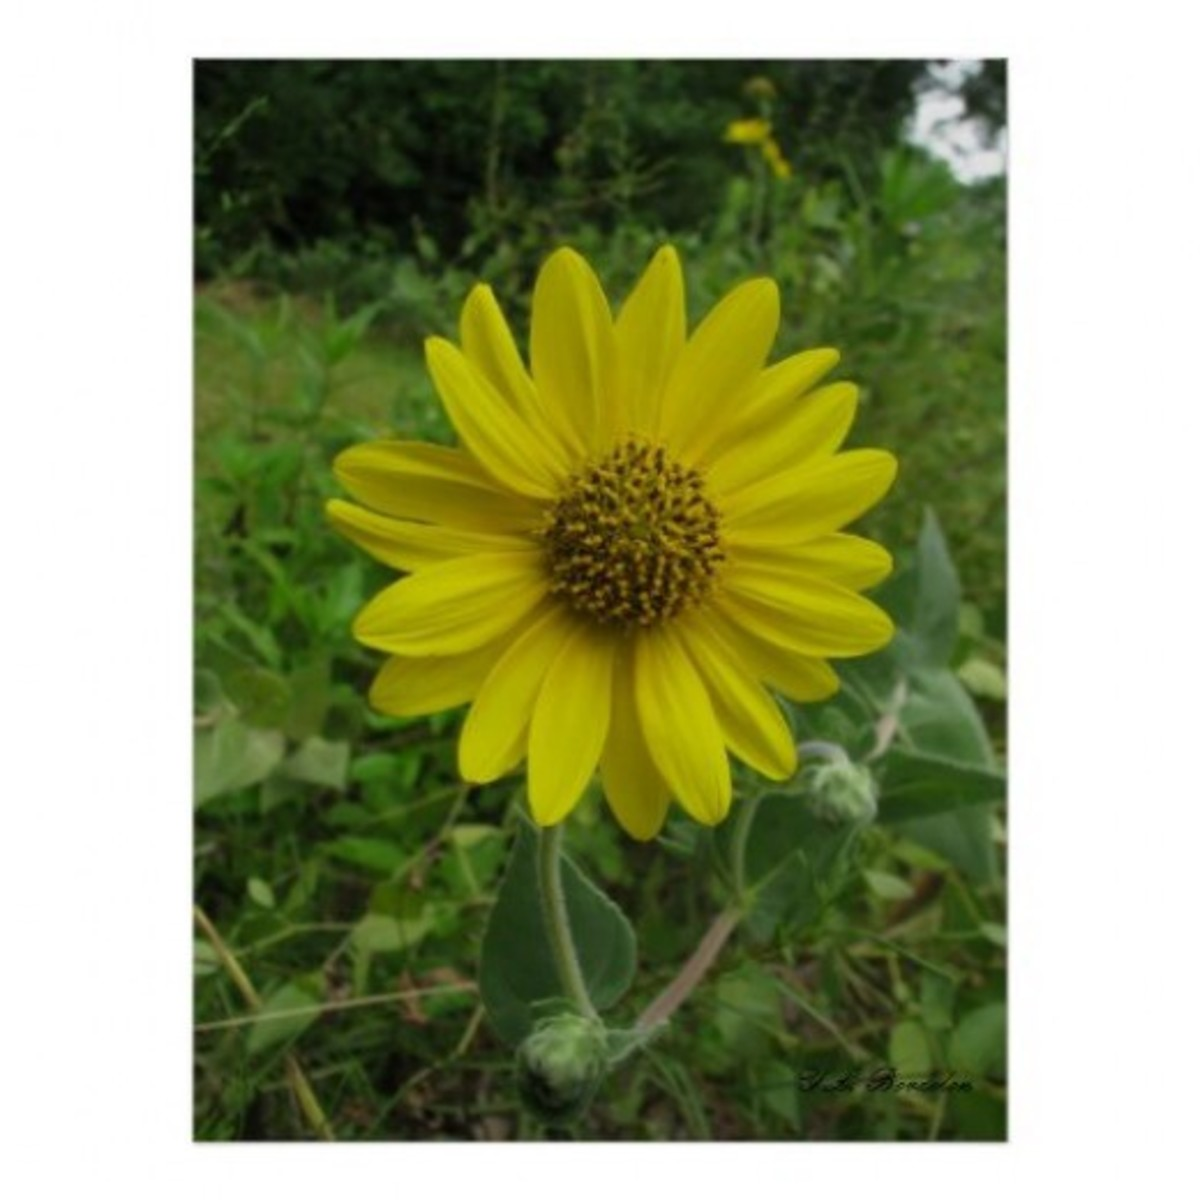 Ashy sunflower will grow in harsh conditions and blooms in late summer.